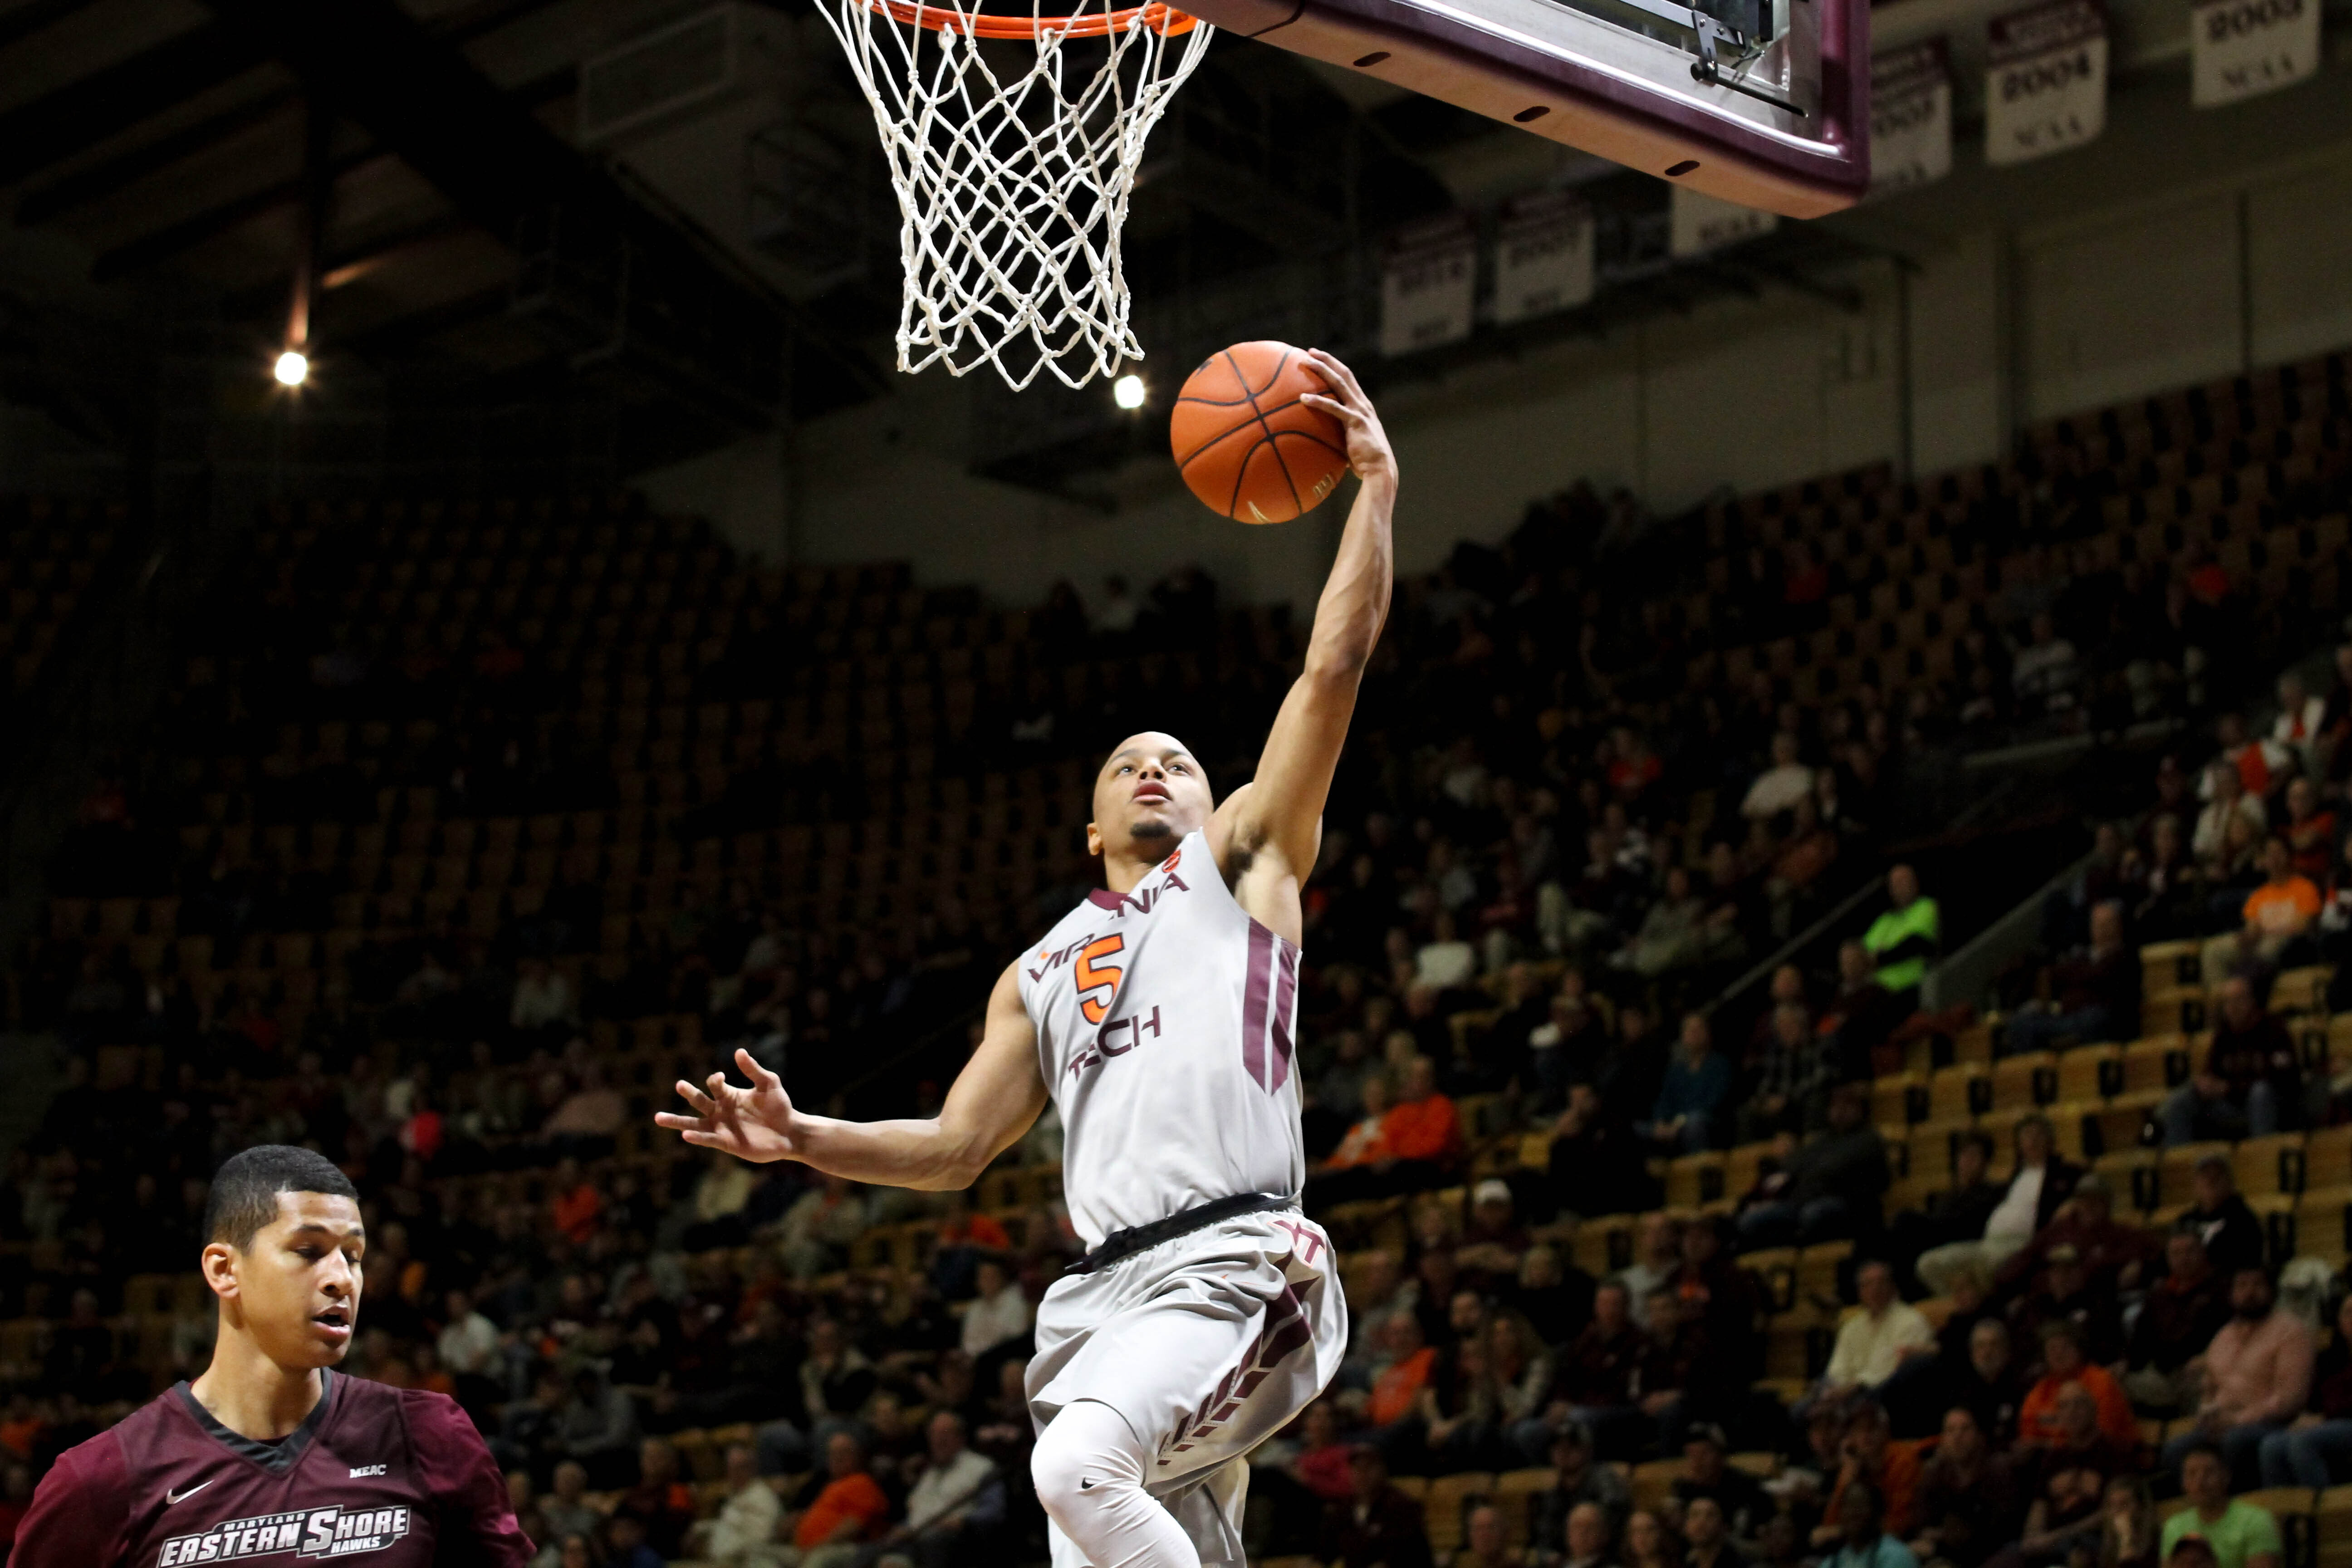 Potential Landing Spots for Justin Robinson in the 2019 NBA Draft